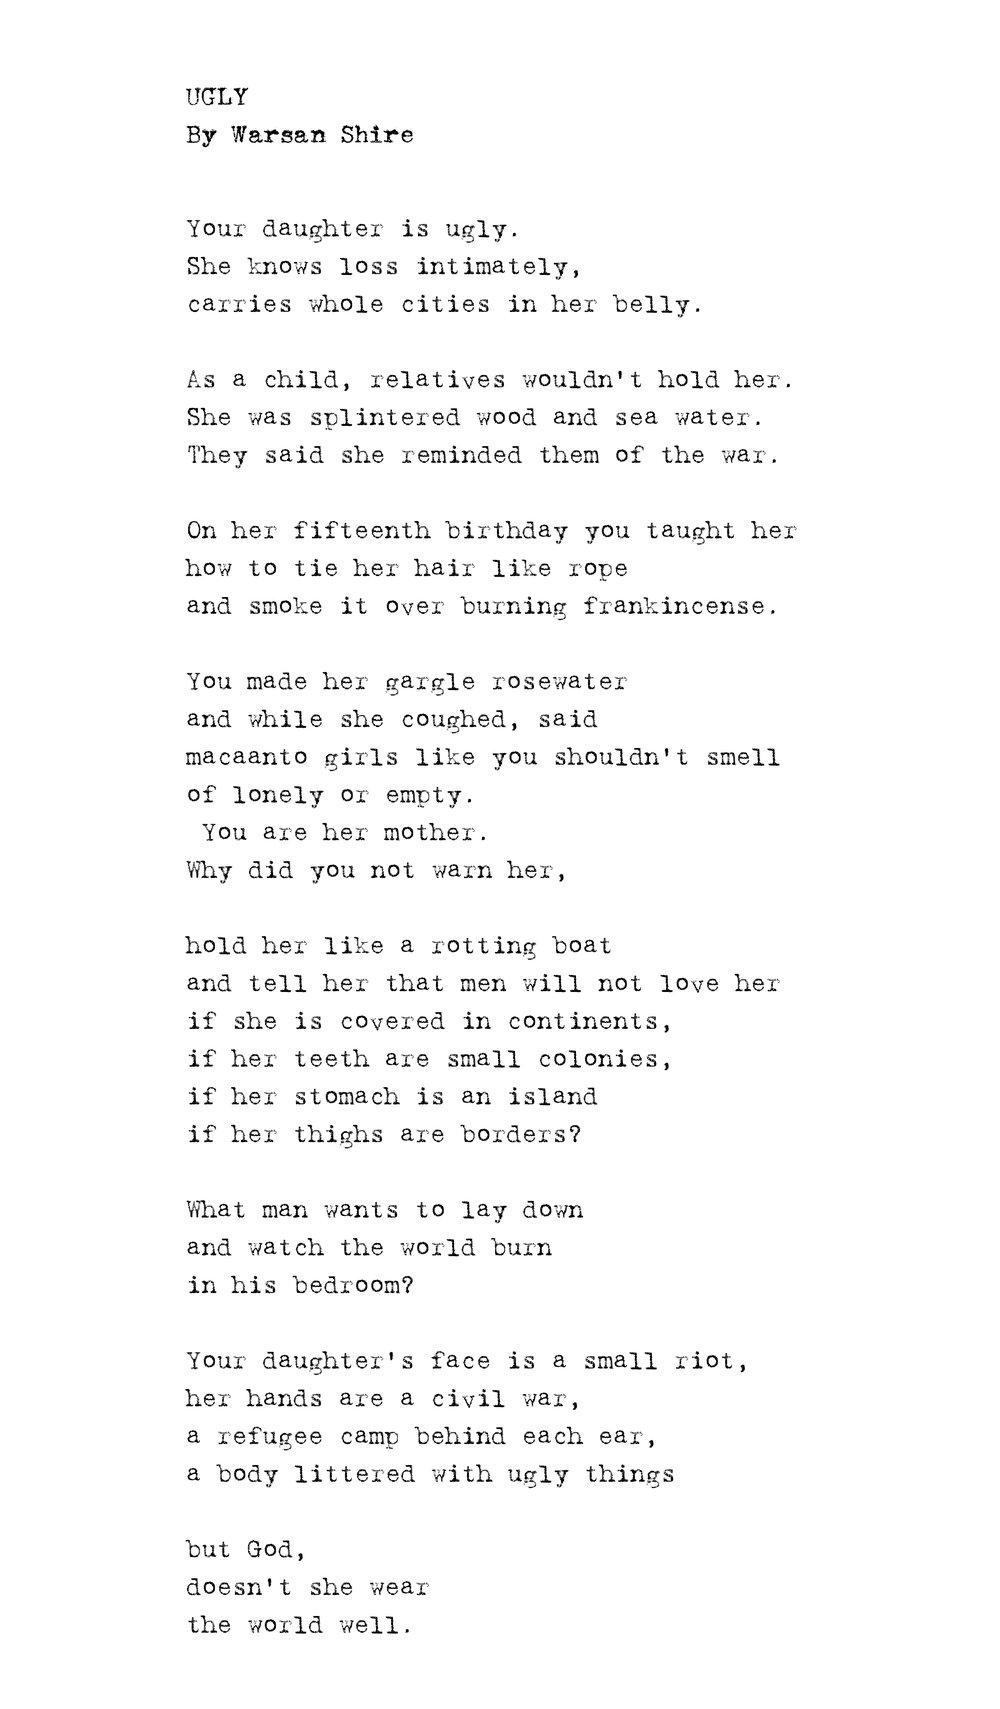 Poems to tell a girl shes beautiful